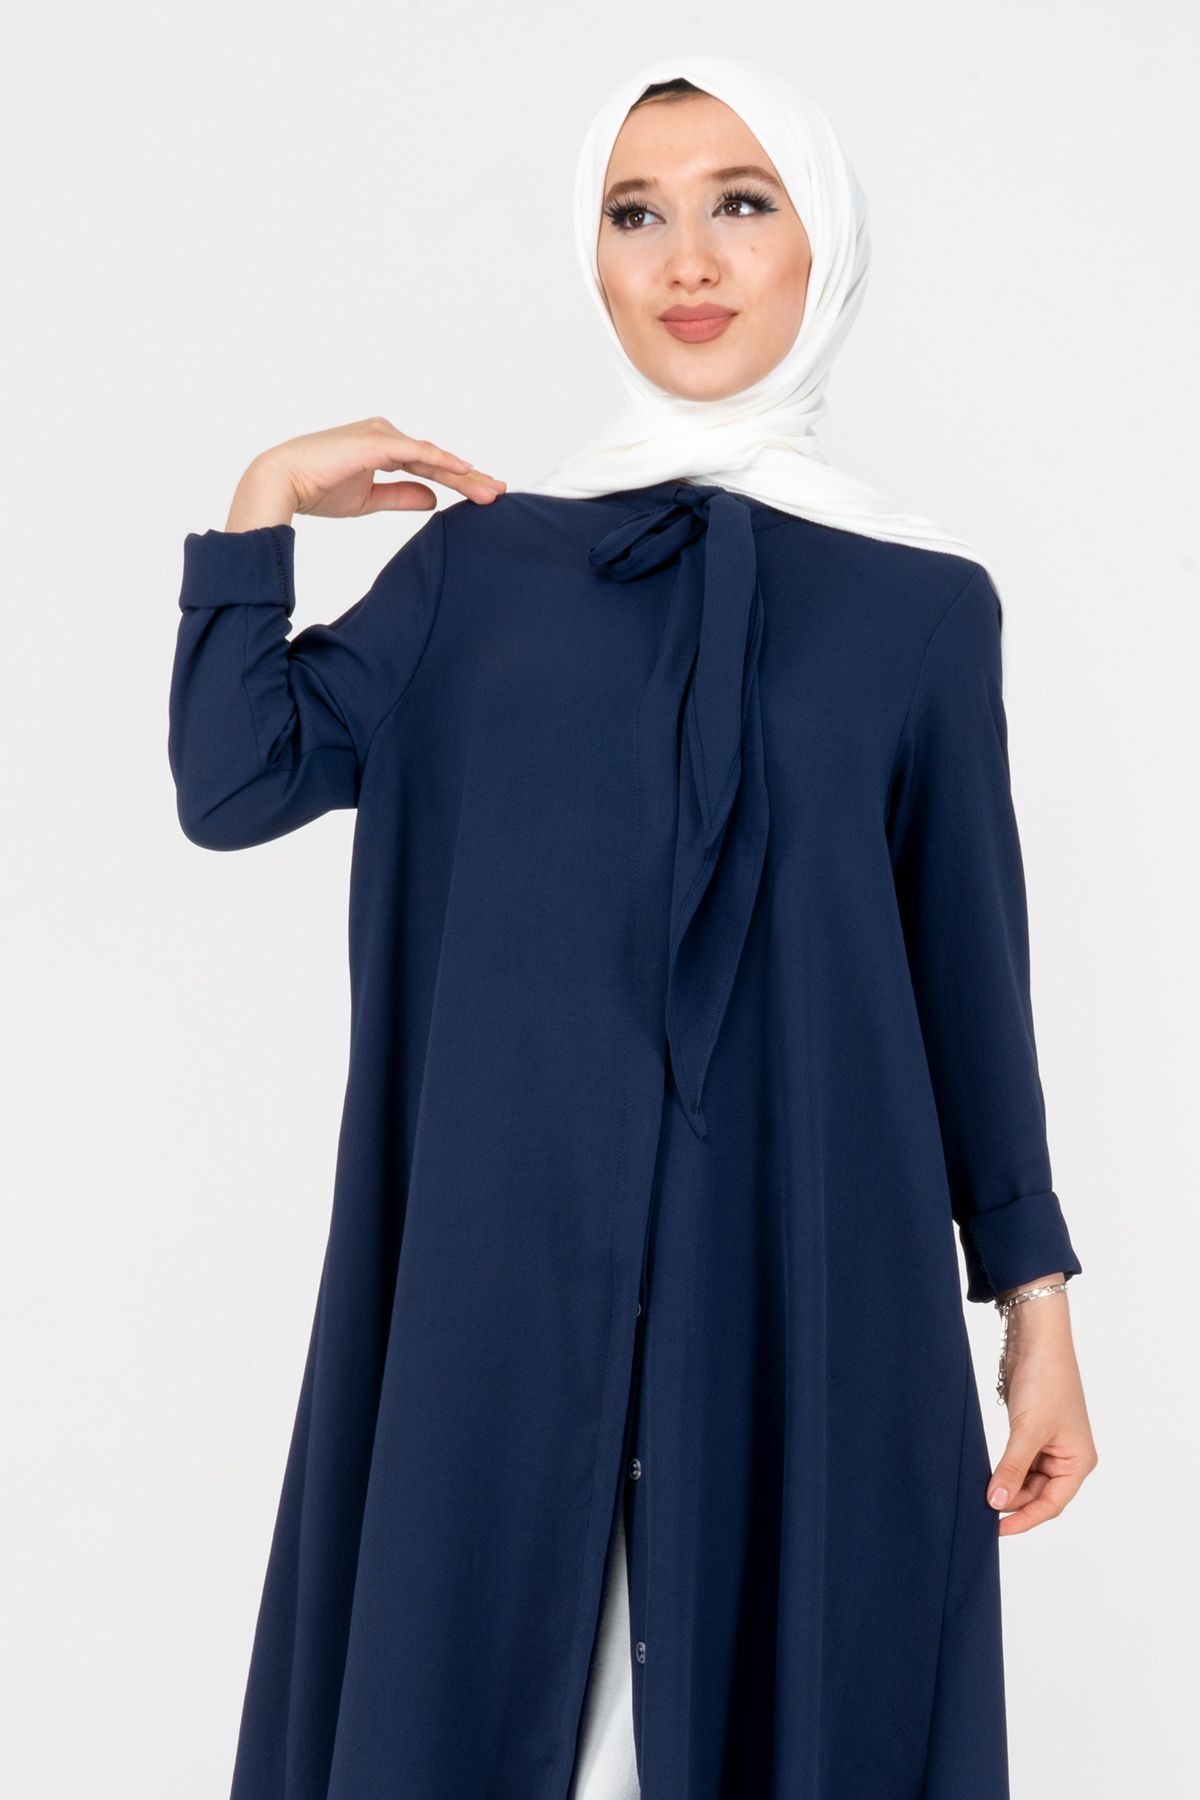 Women's Scarf Detailed Tunic 5012 Navy blue